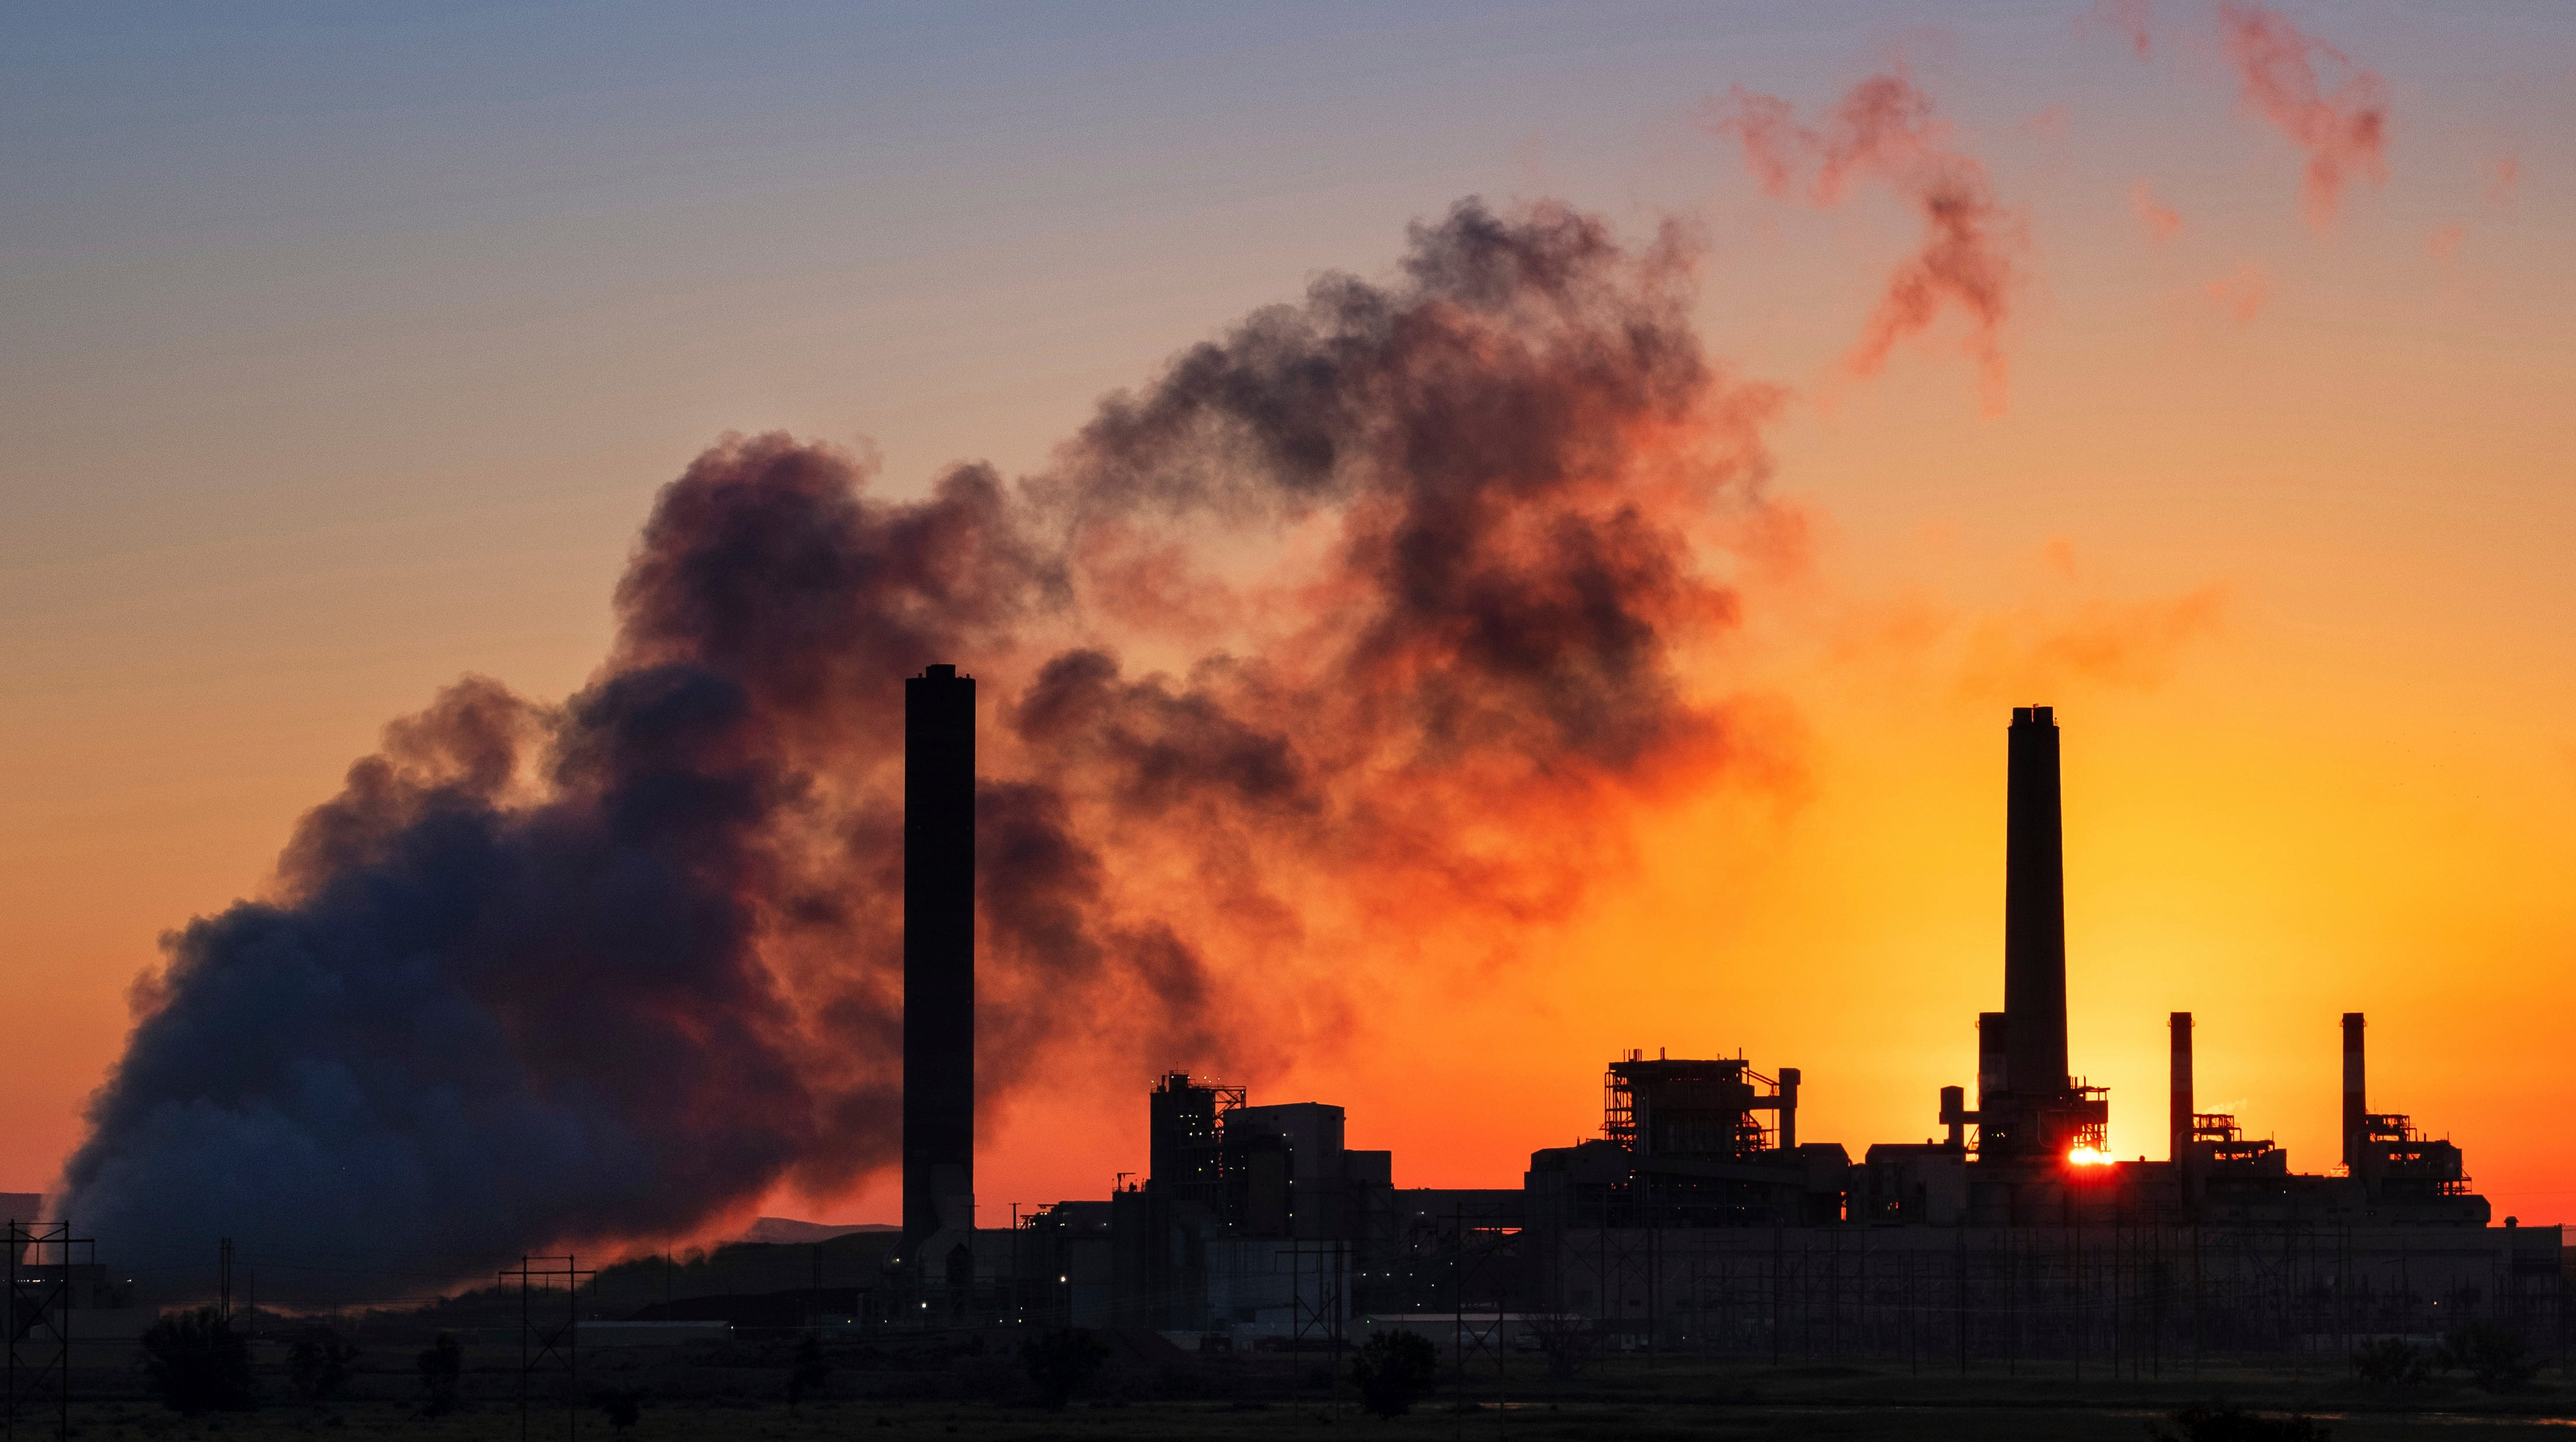 Over 40 Per Cent Of WorldwideCoal Plants Are Operating At A Loss, Study Says